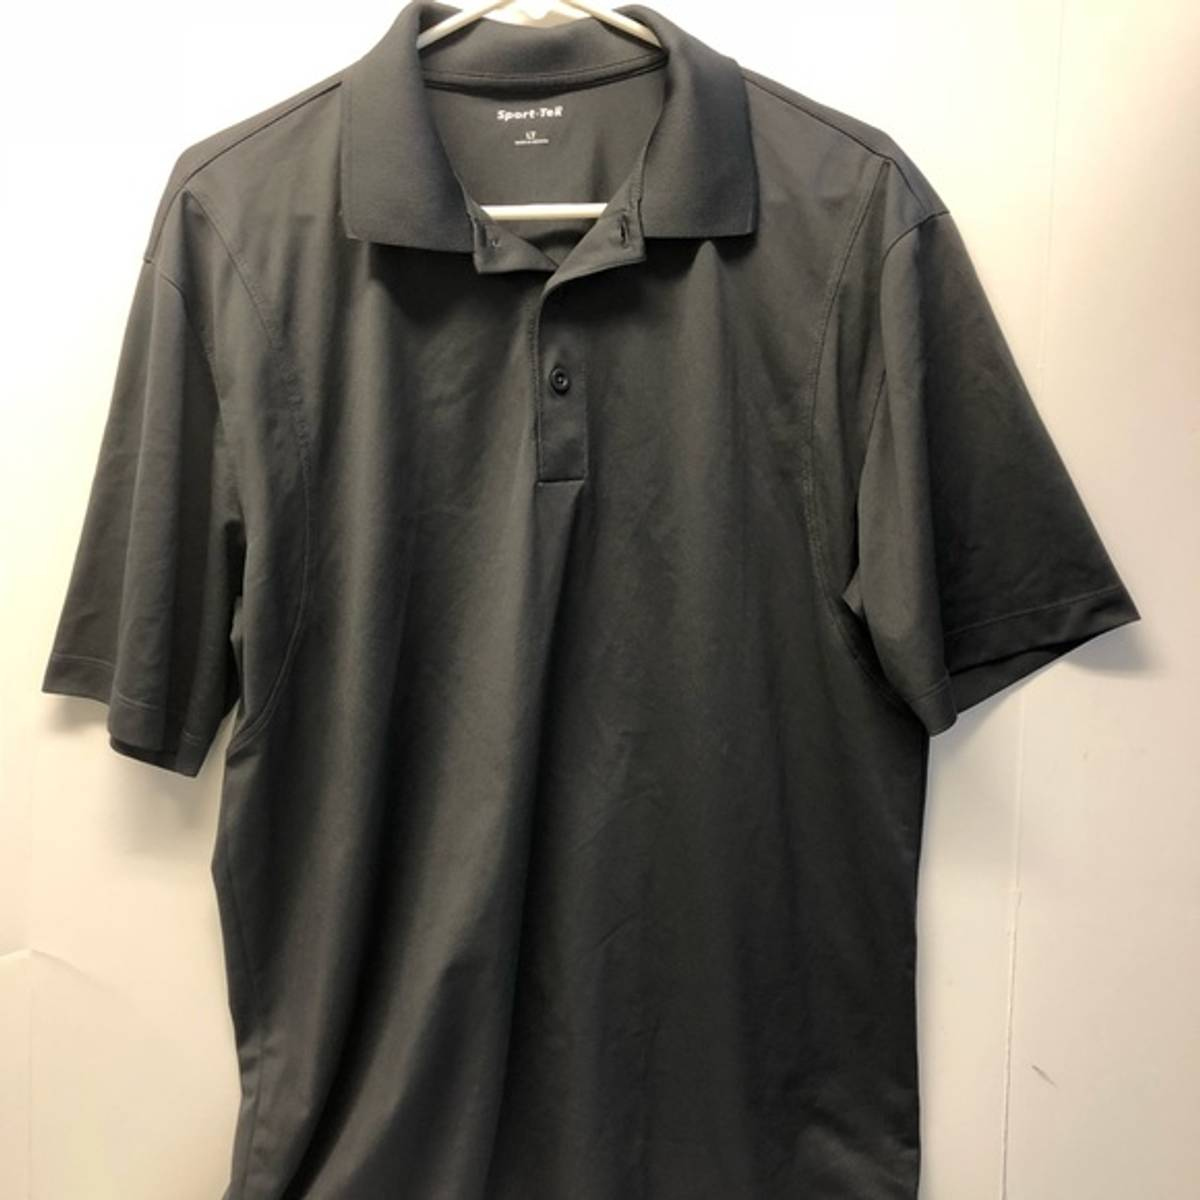 Unlisted Sport Tek Polo Golf Shirt Mens Size Large Grailed Golf is a sports game in which individual participants or teams try to hit a small ball into special holes with the help of golf clubs. grailed